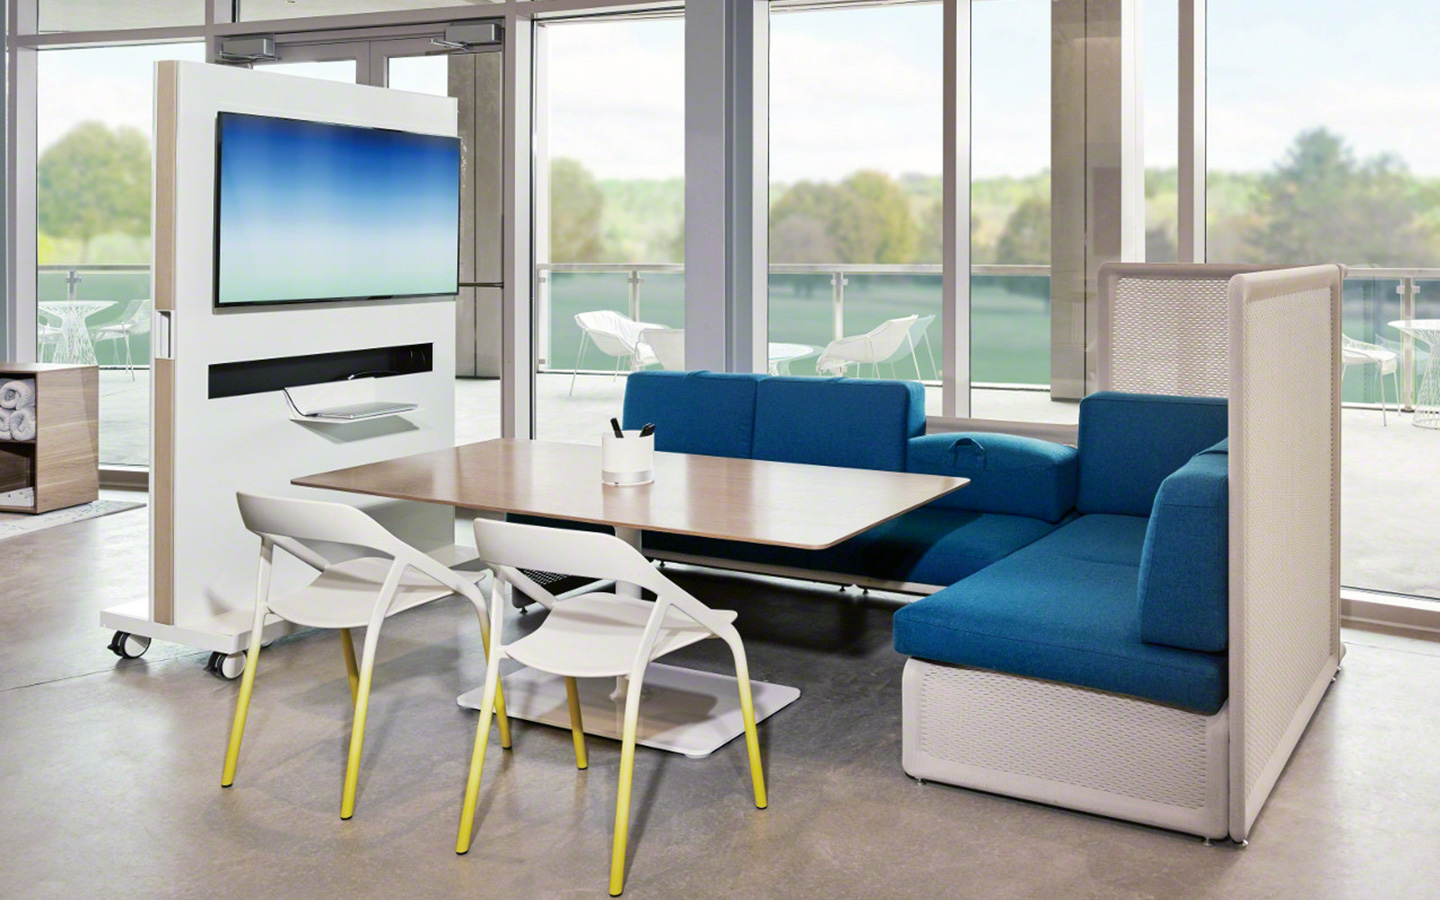 Key Questions to Ask Before An Office Space Re-Design